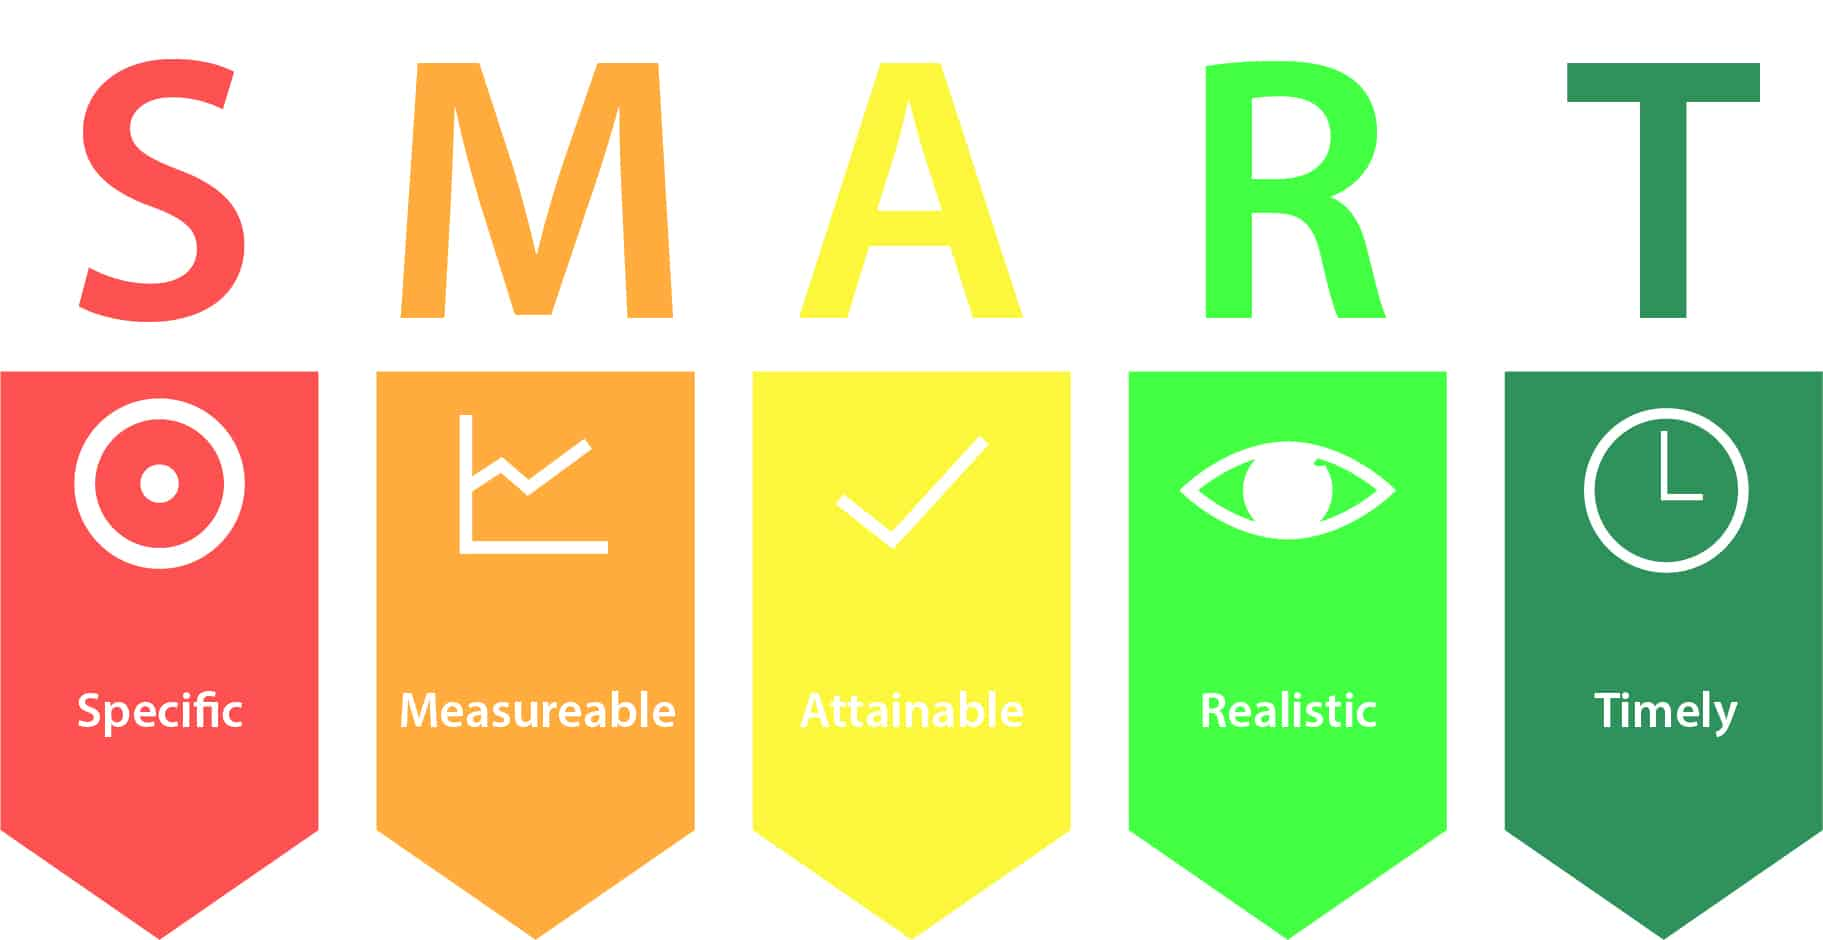 What does SMART stand for in business